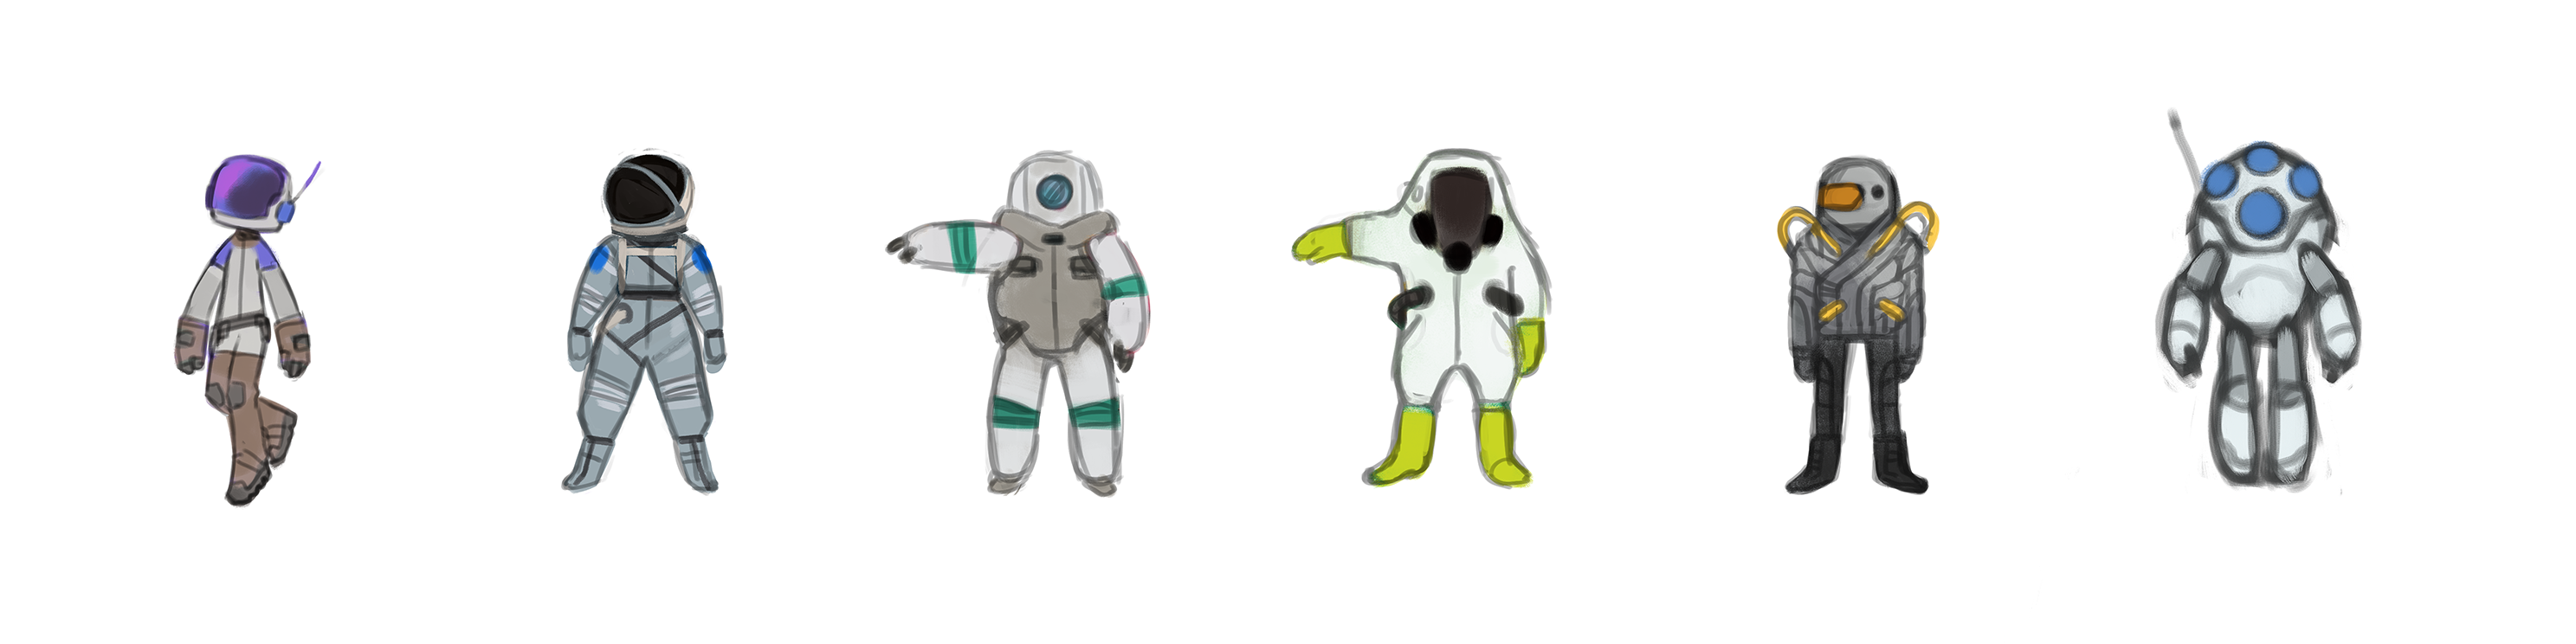 Planet-Specific Suits - Suggestions and Ideas - System Era